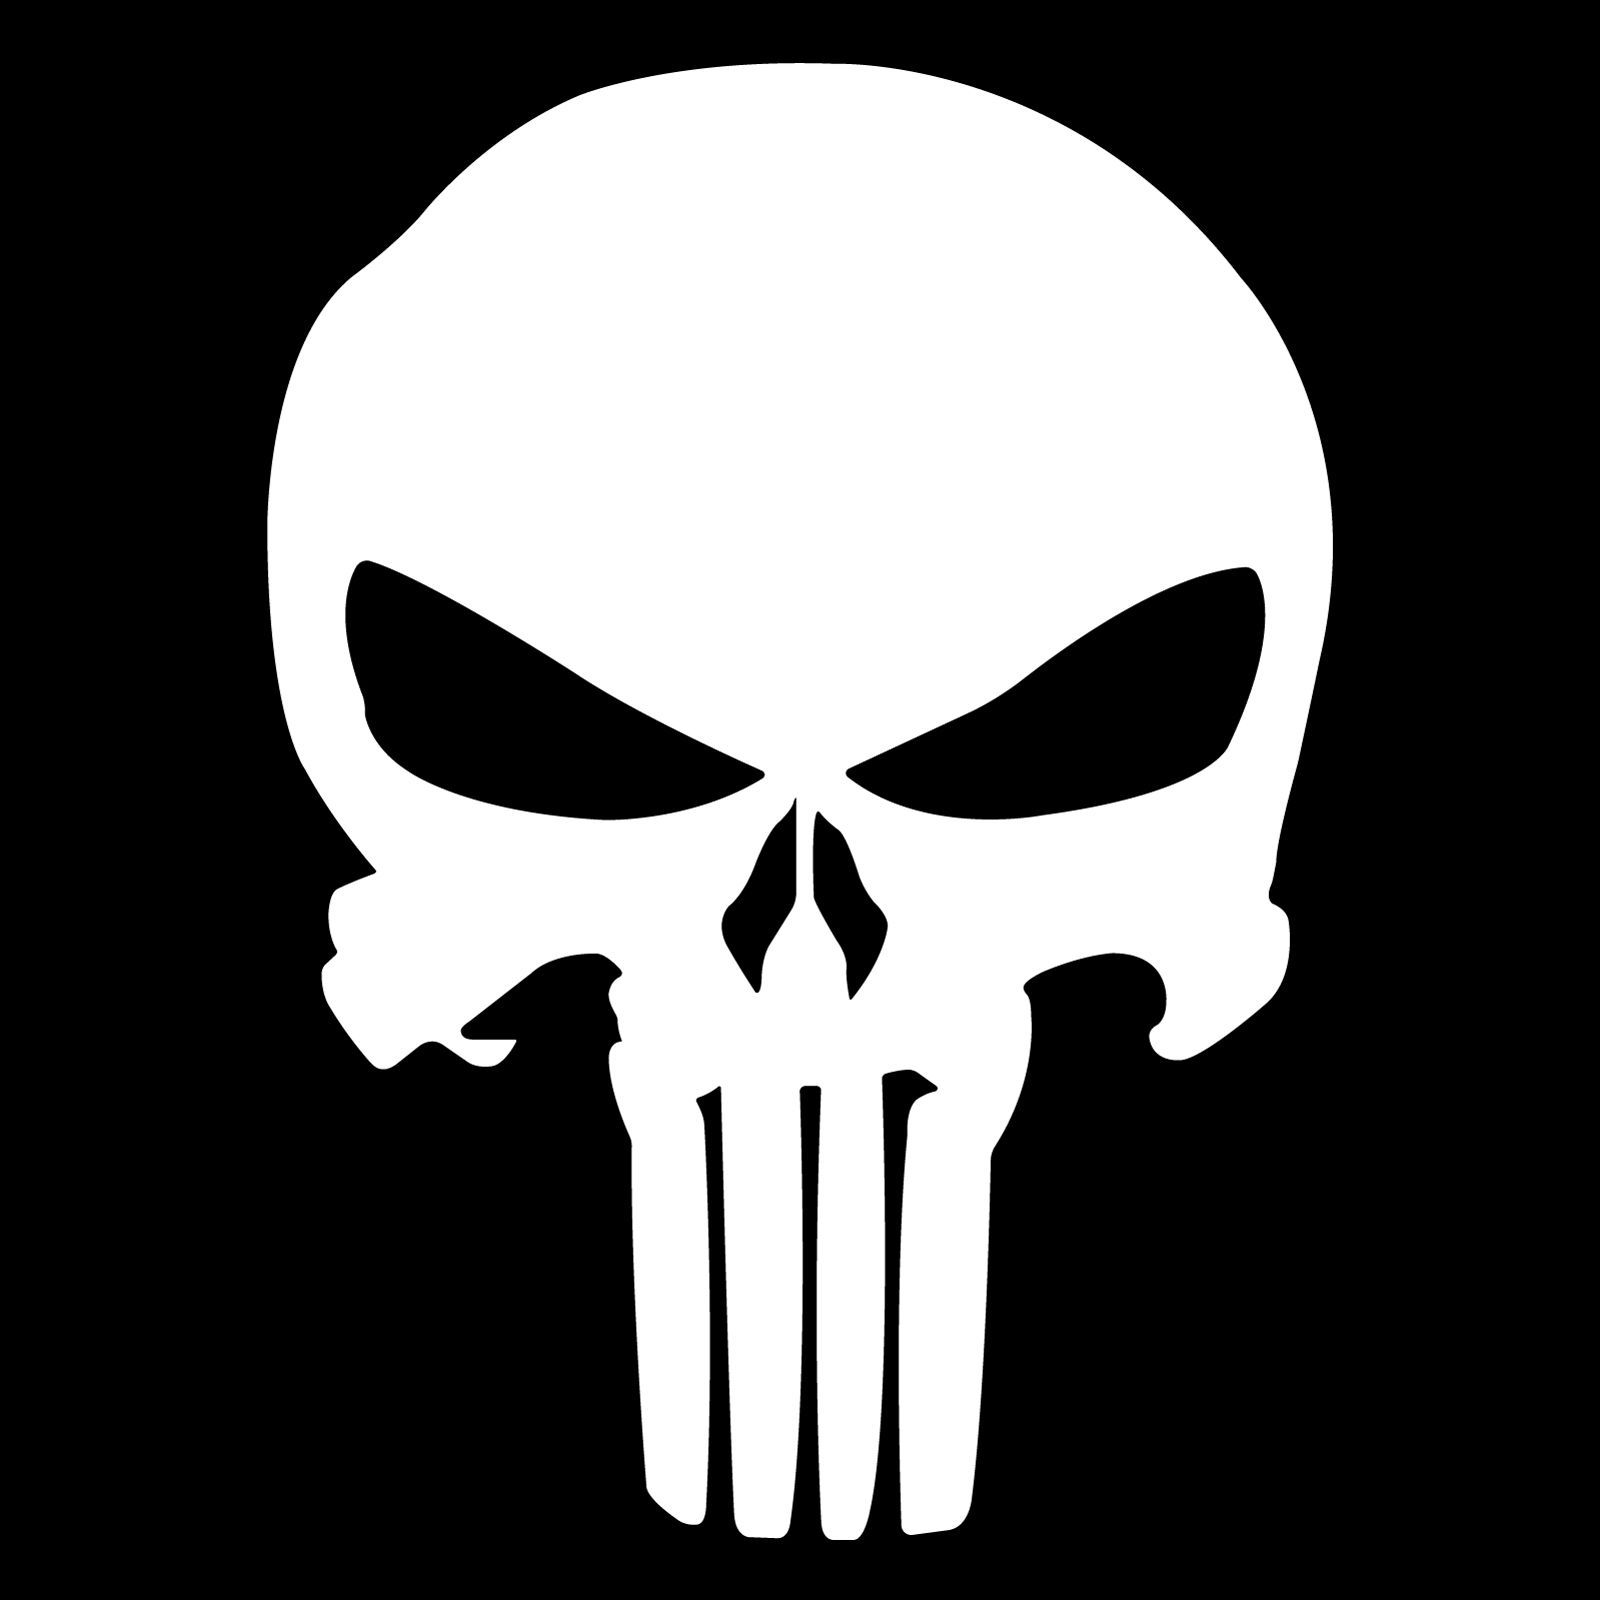 Punisher Sticker Decal Vinyl Car Window Bumper Skull 3 9 X 5 5 Jdm Punisher Marvel Punisher Logo Punisher